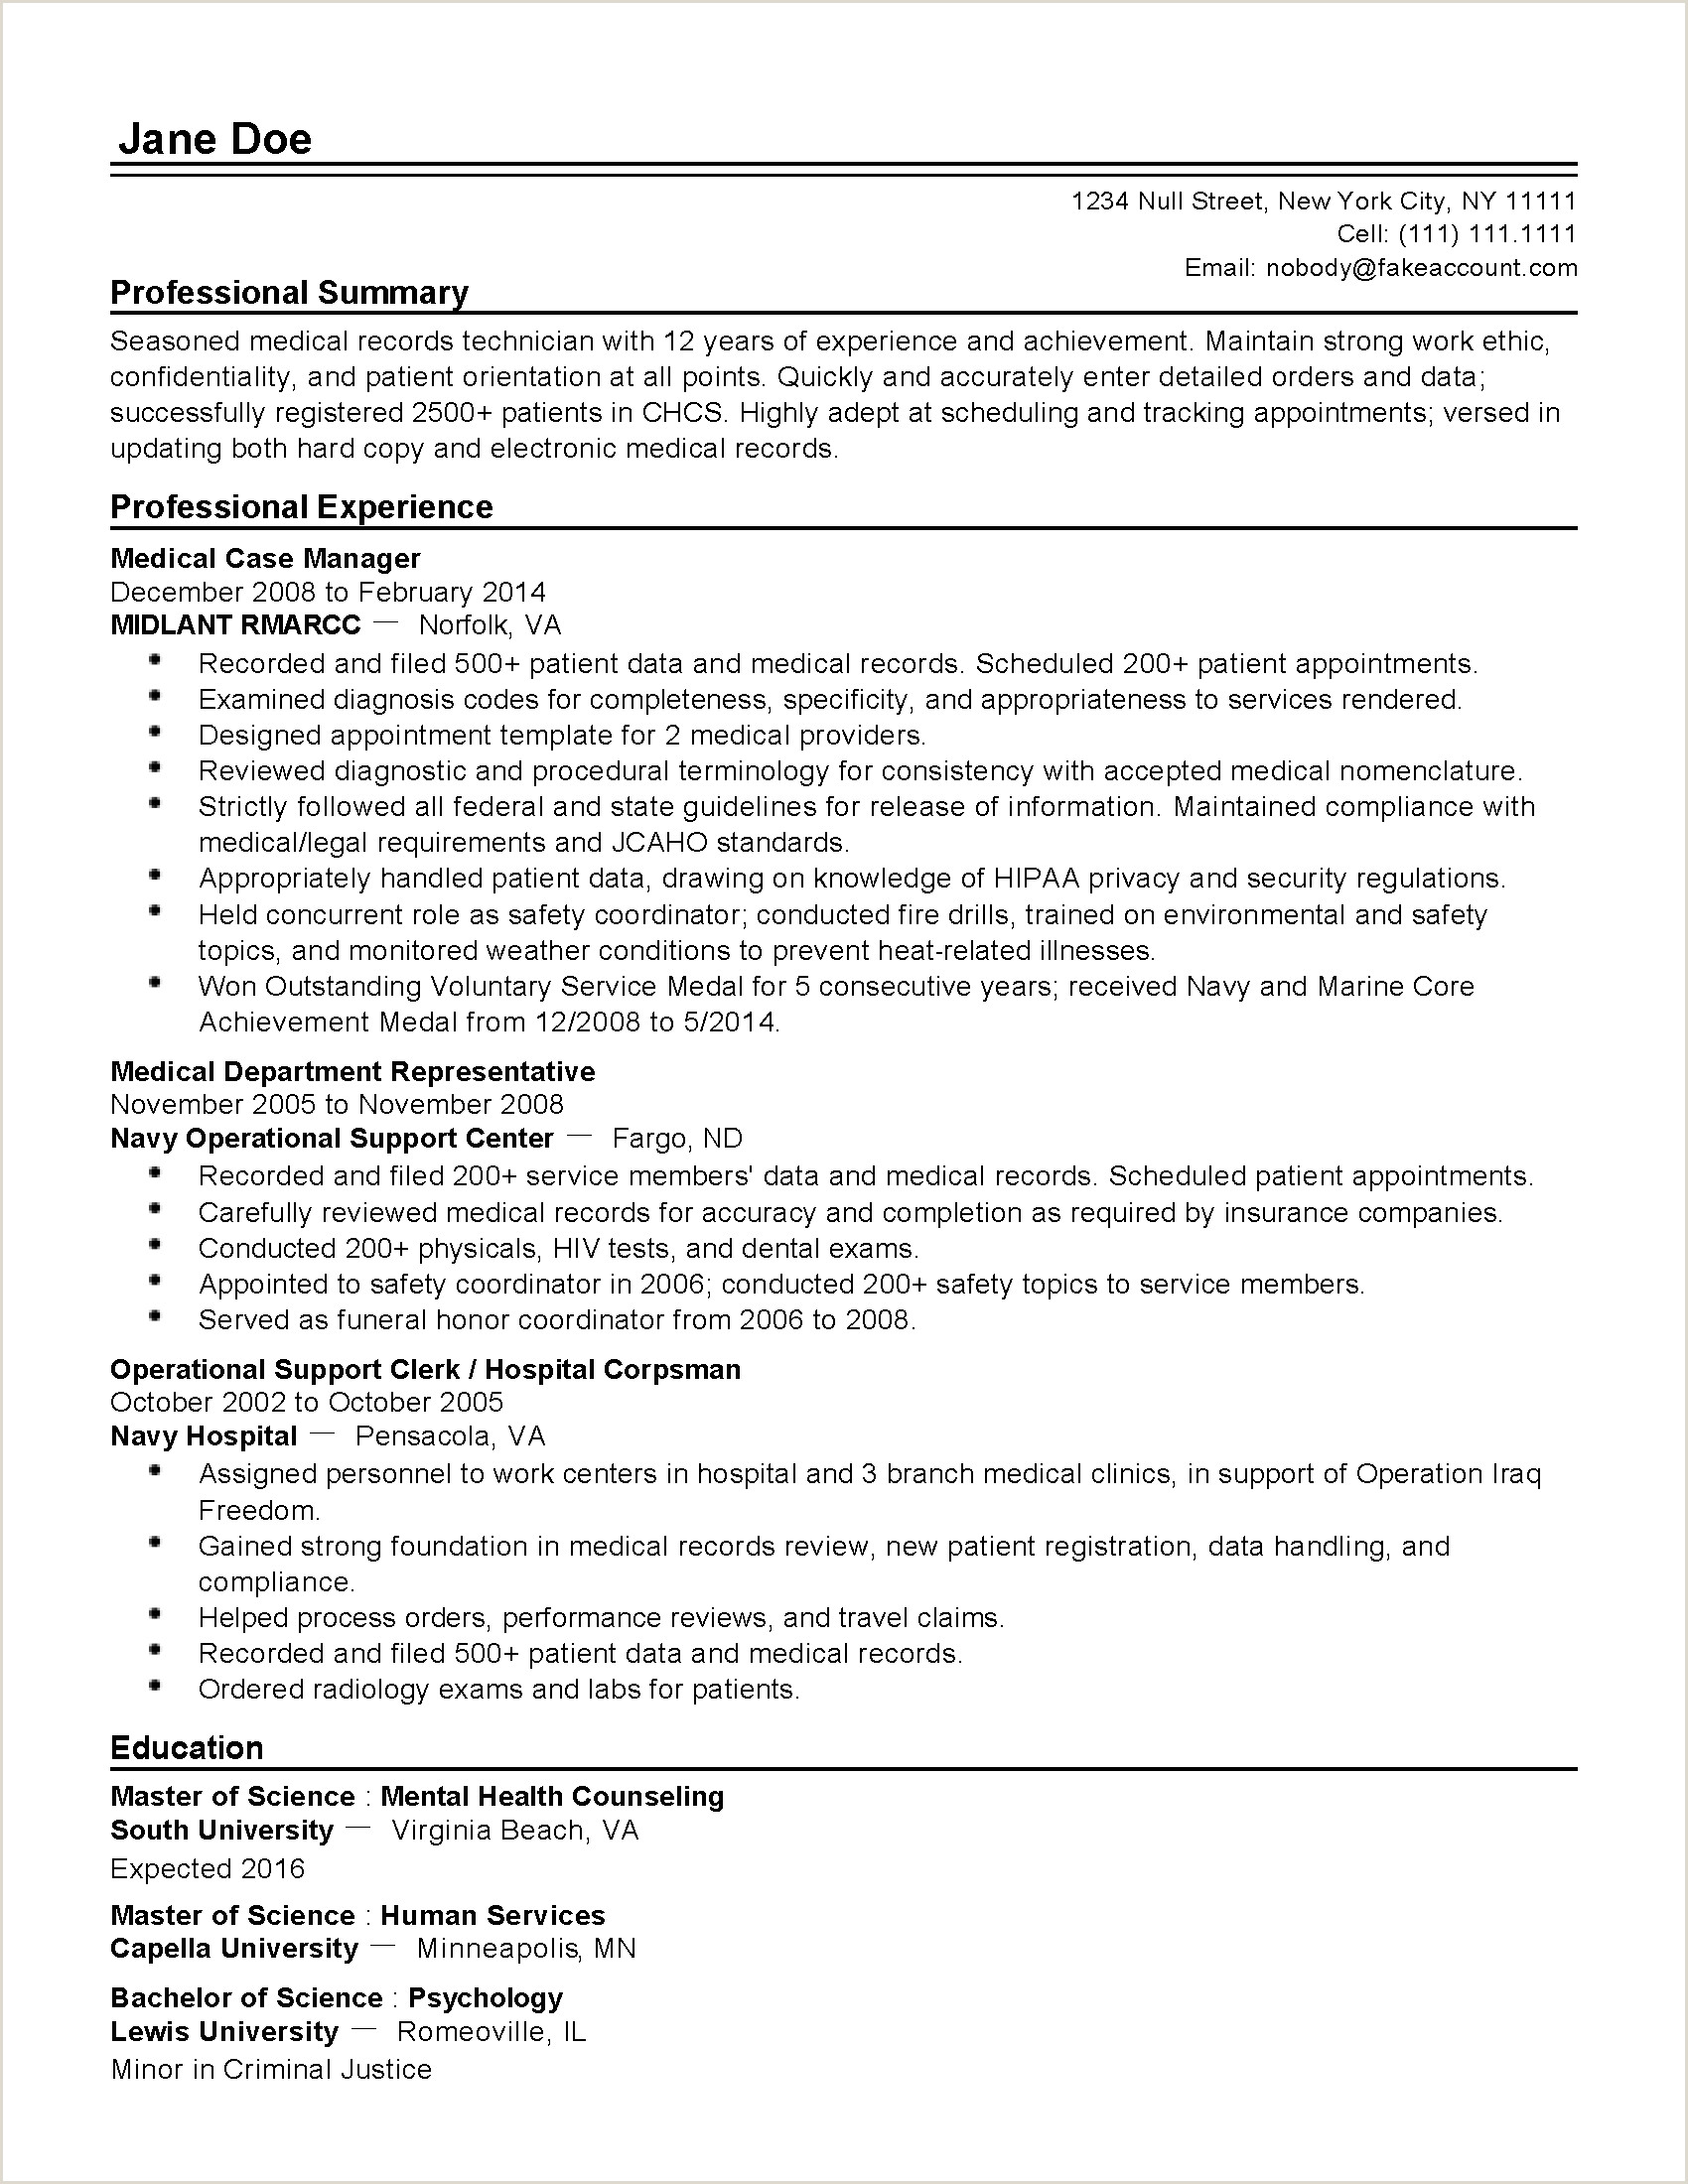 File Clerk Resume Objective Resume for Medical Records Position Websites to Write Essays